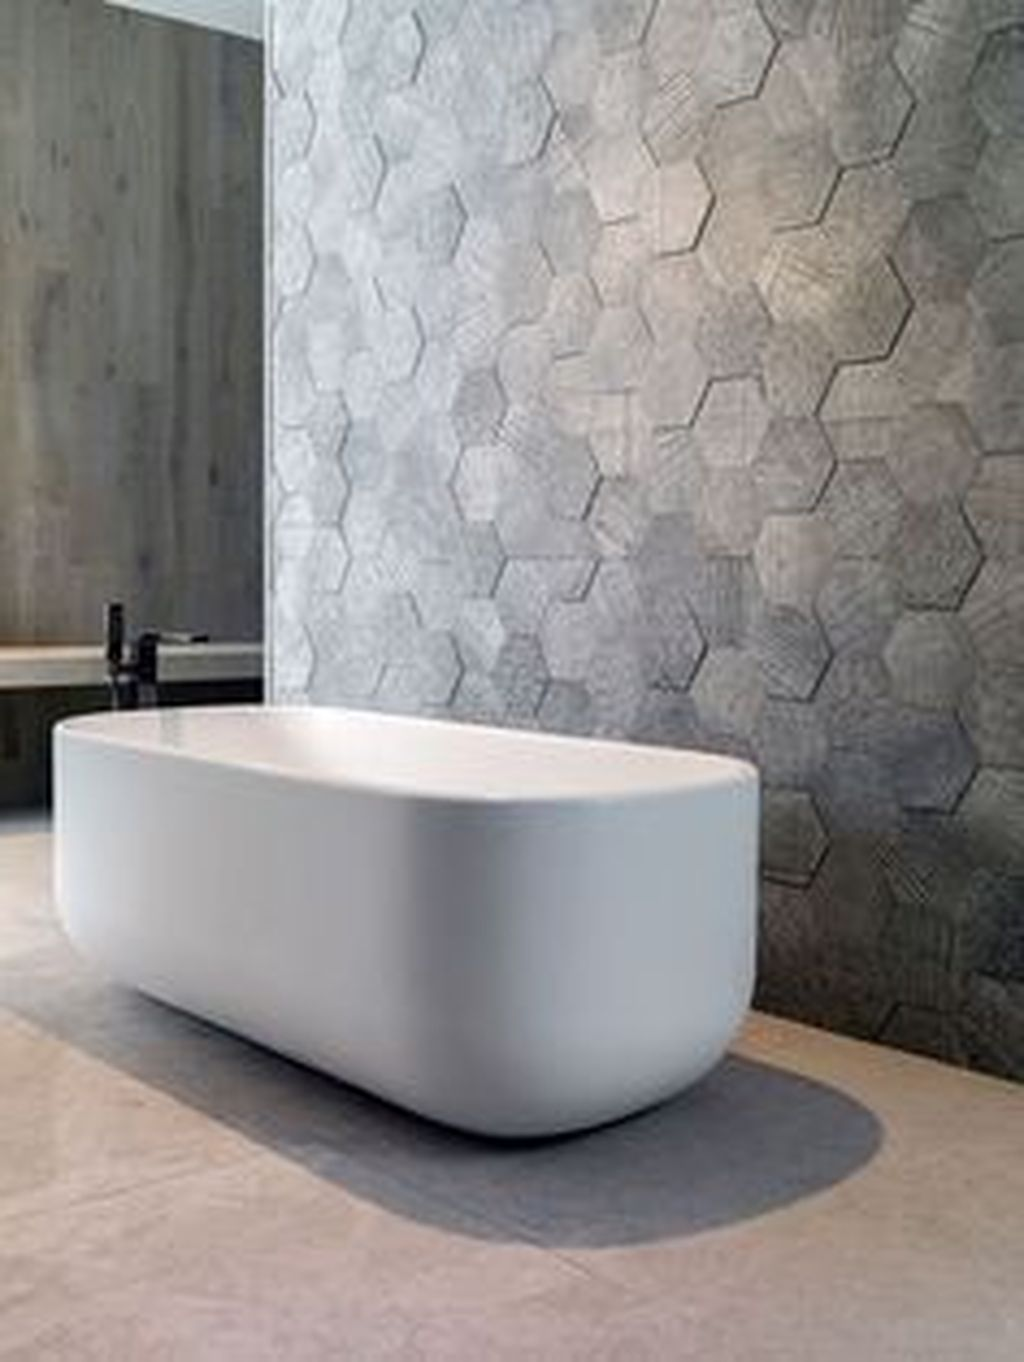 The Best Stone Tile Bathroom Ideas To Decorate Your Bathroom 02